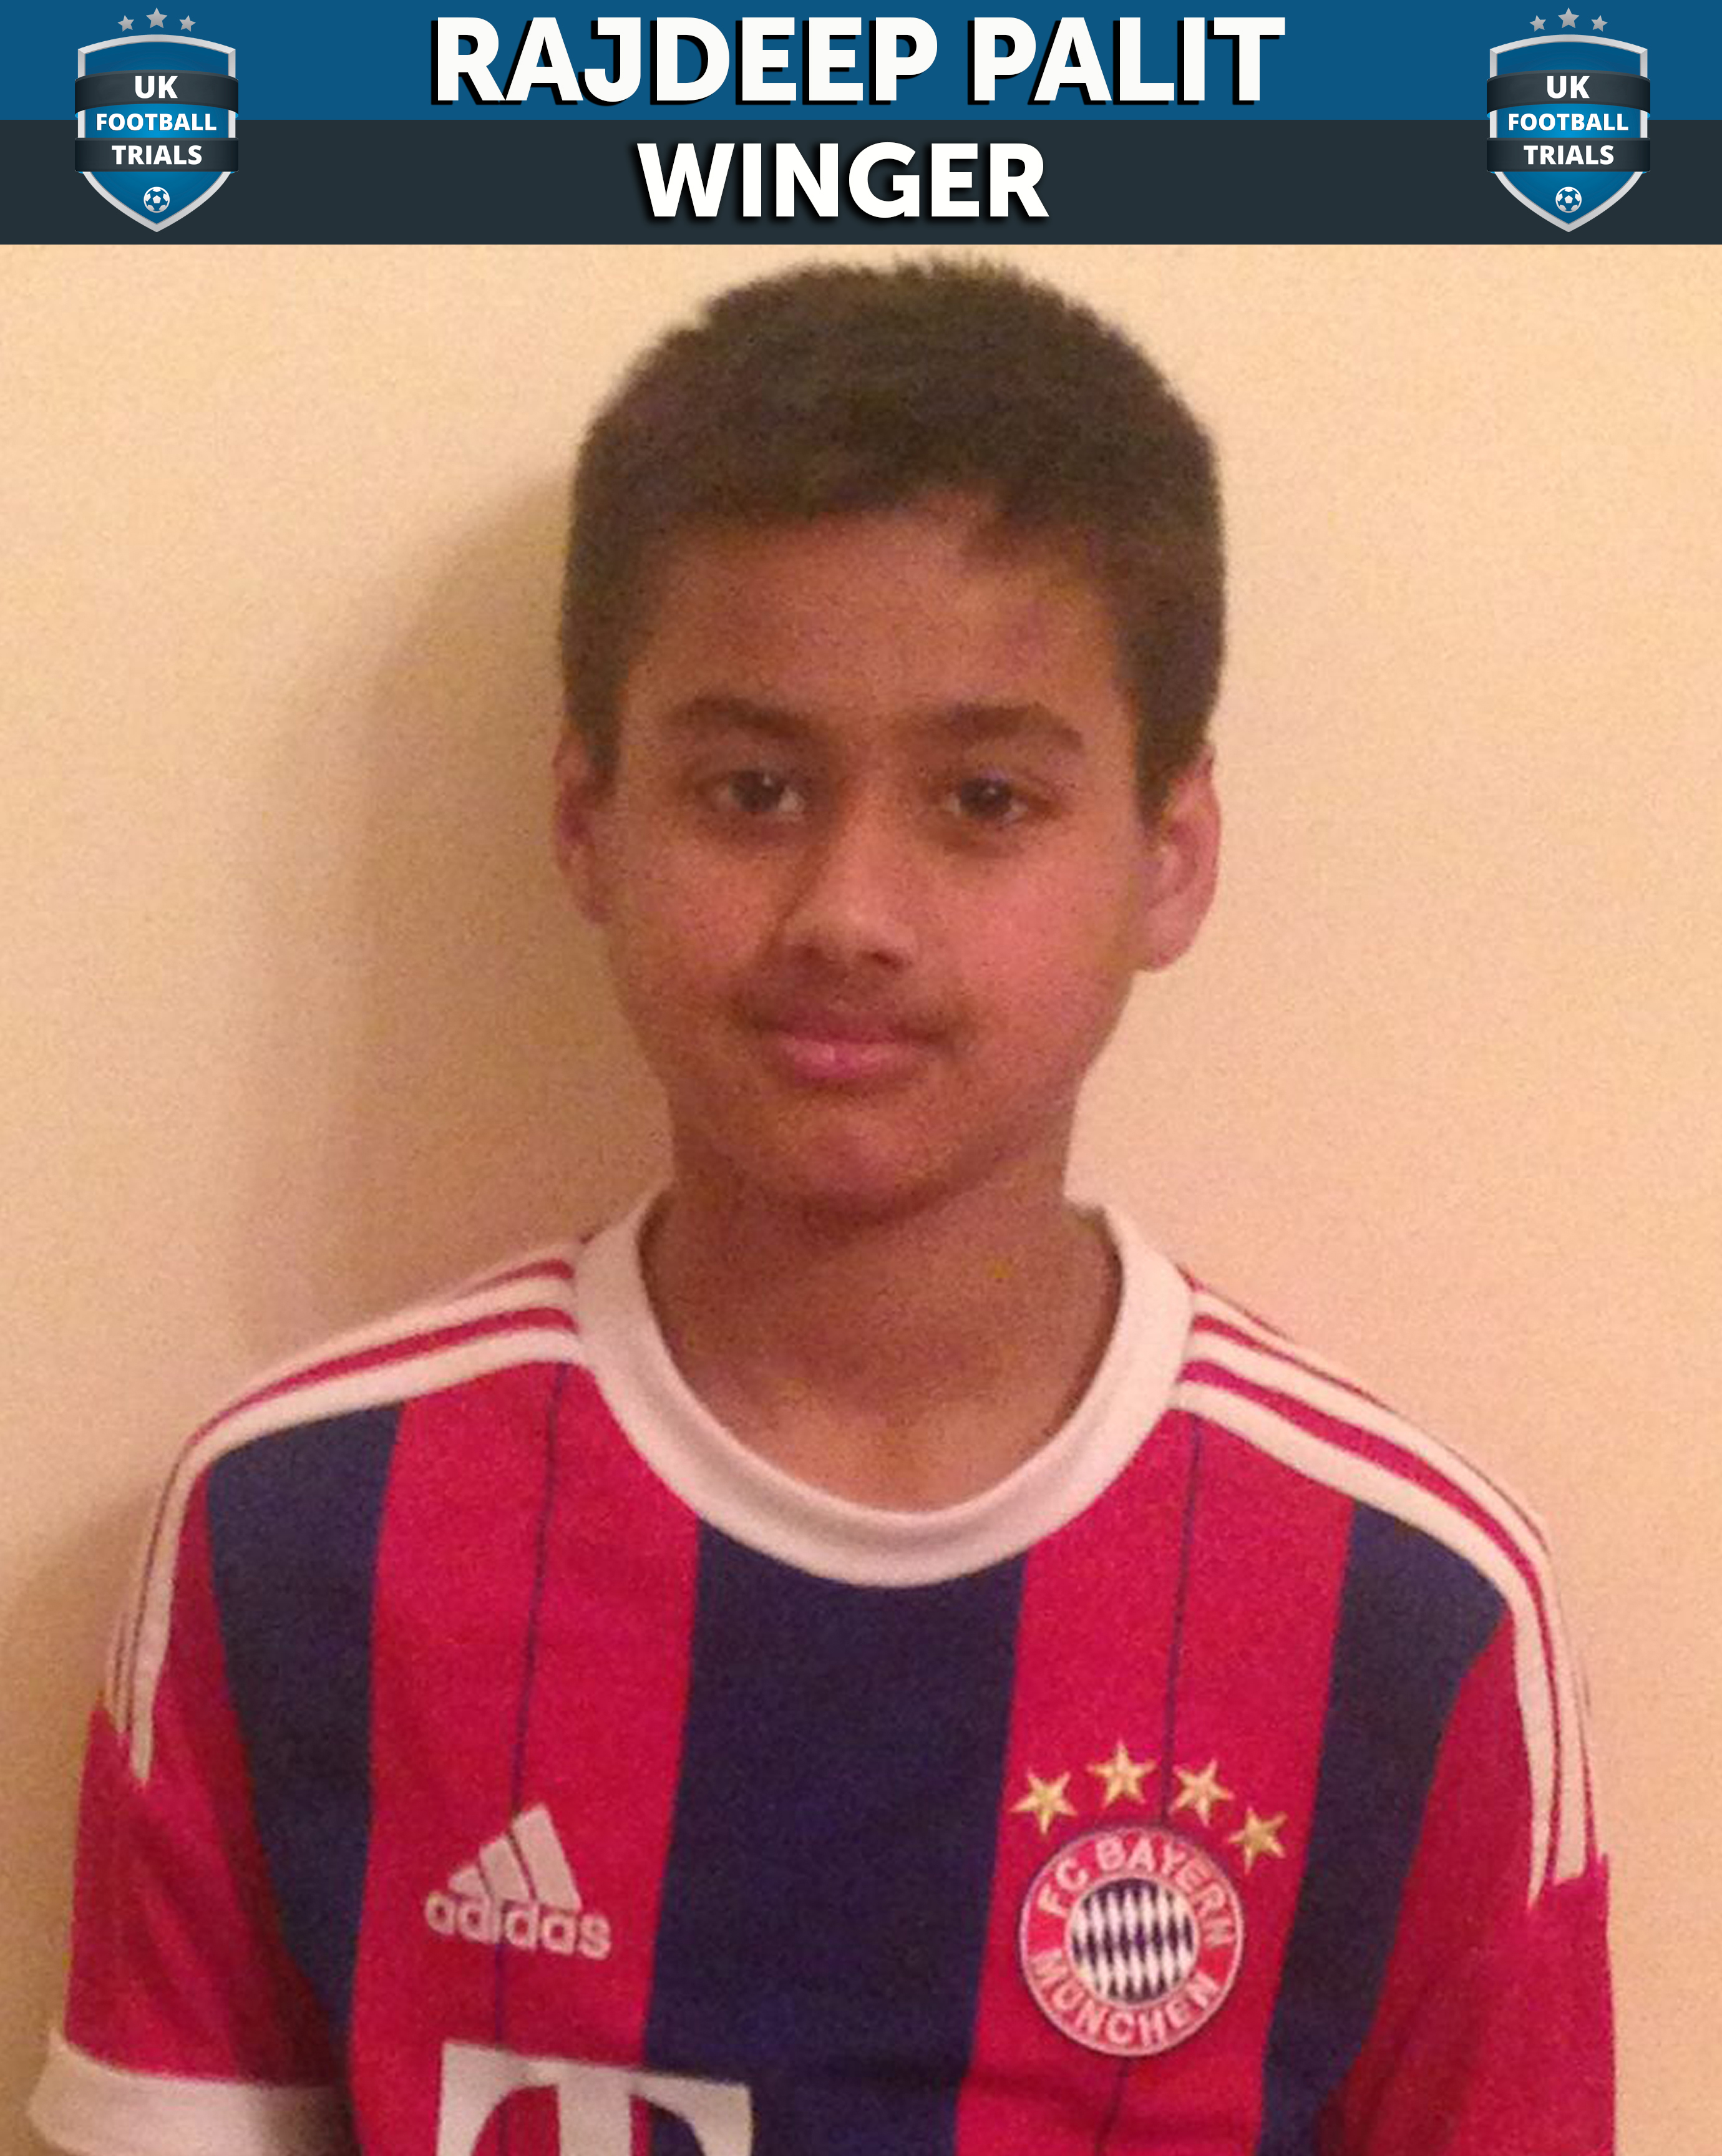 11-year-old Rajdeep signs Academy Contract